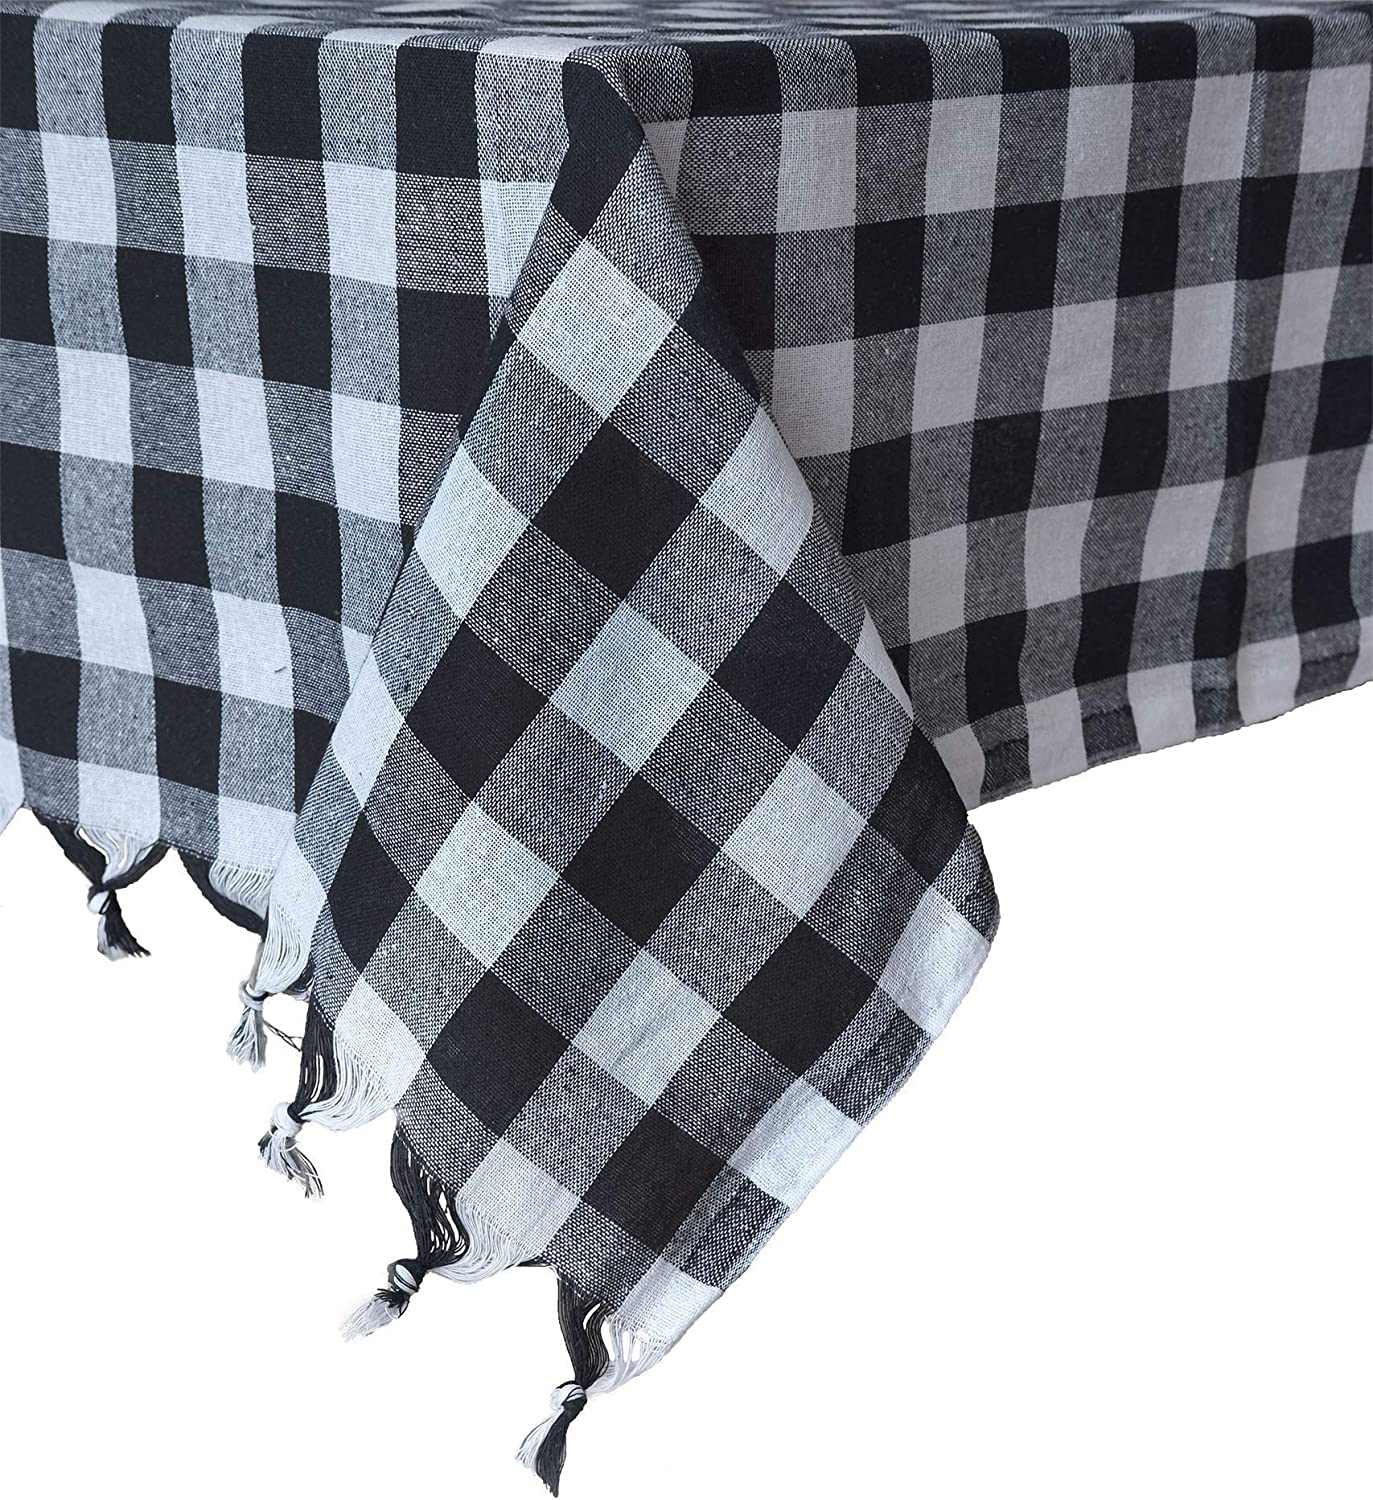 Madame Gayda Tablecloth Checkered Buffalo Check Plaid Linen Cotton Picnic Blanket Table Cover Mantel (Black and White, 55 x 55'')